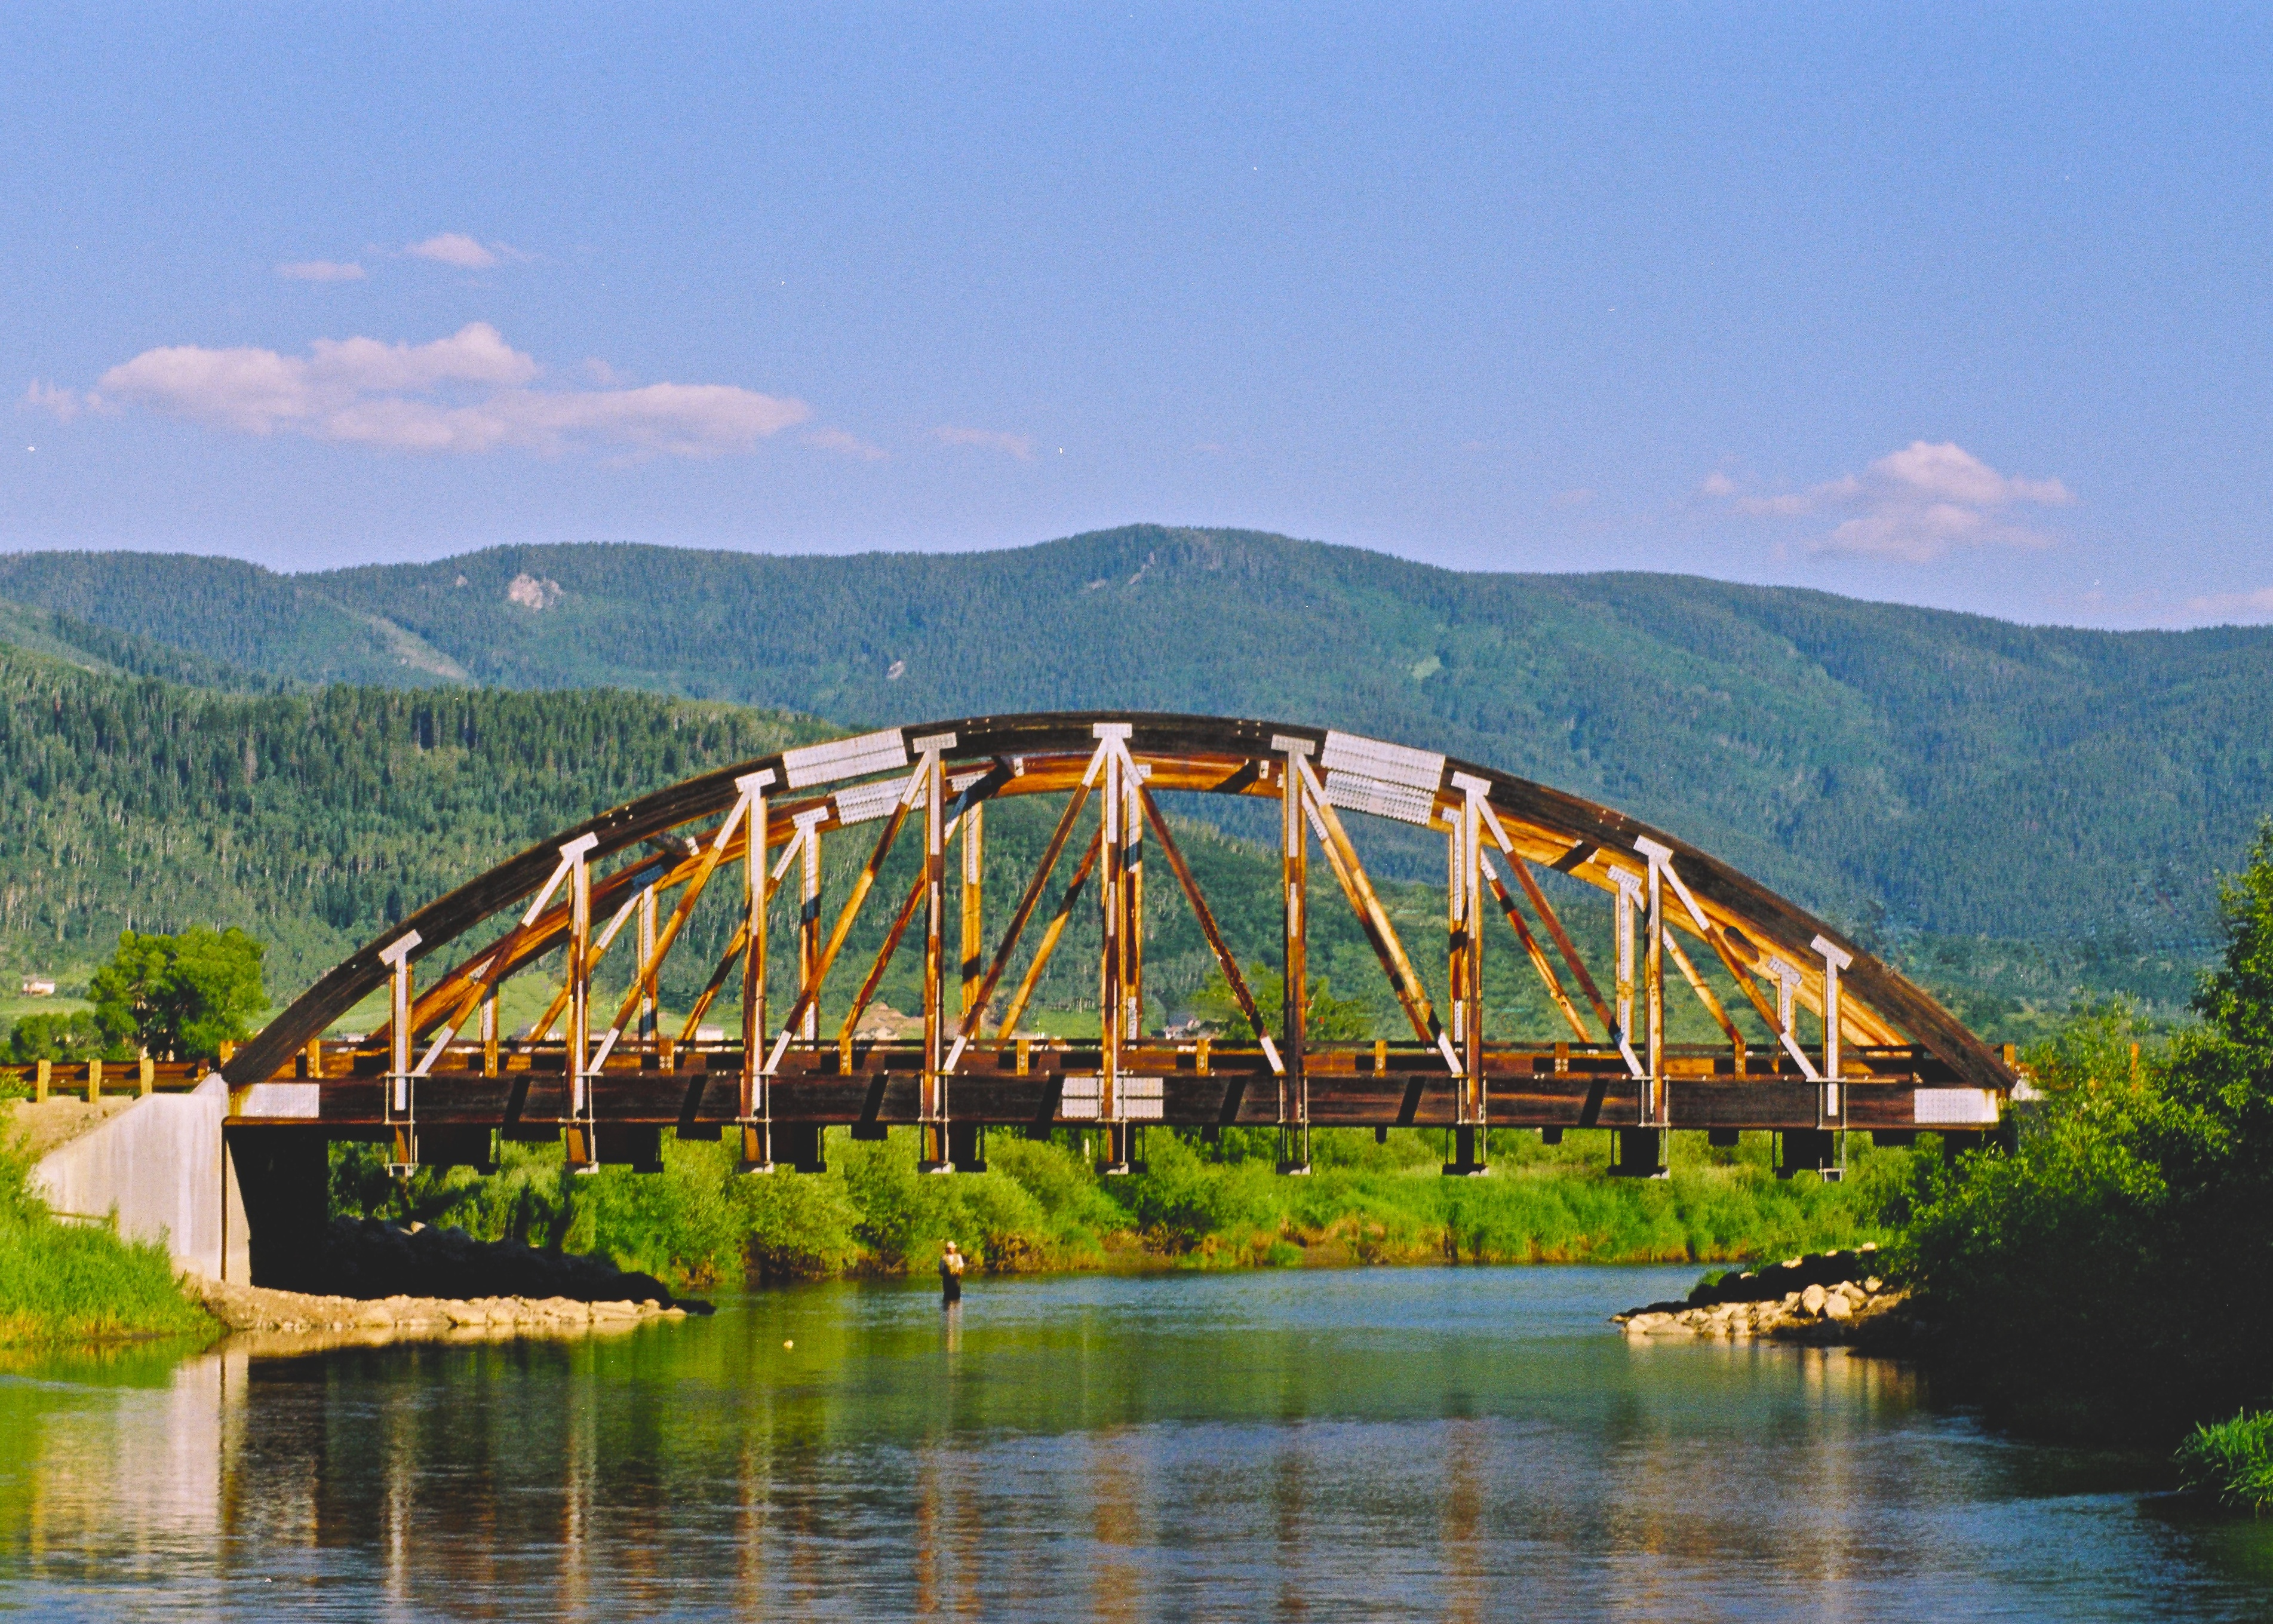 bridge over yampa river with fisherman in background